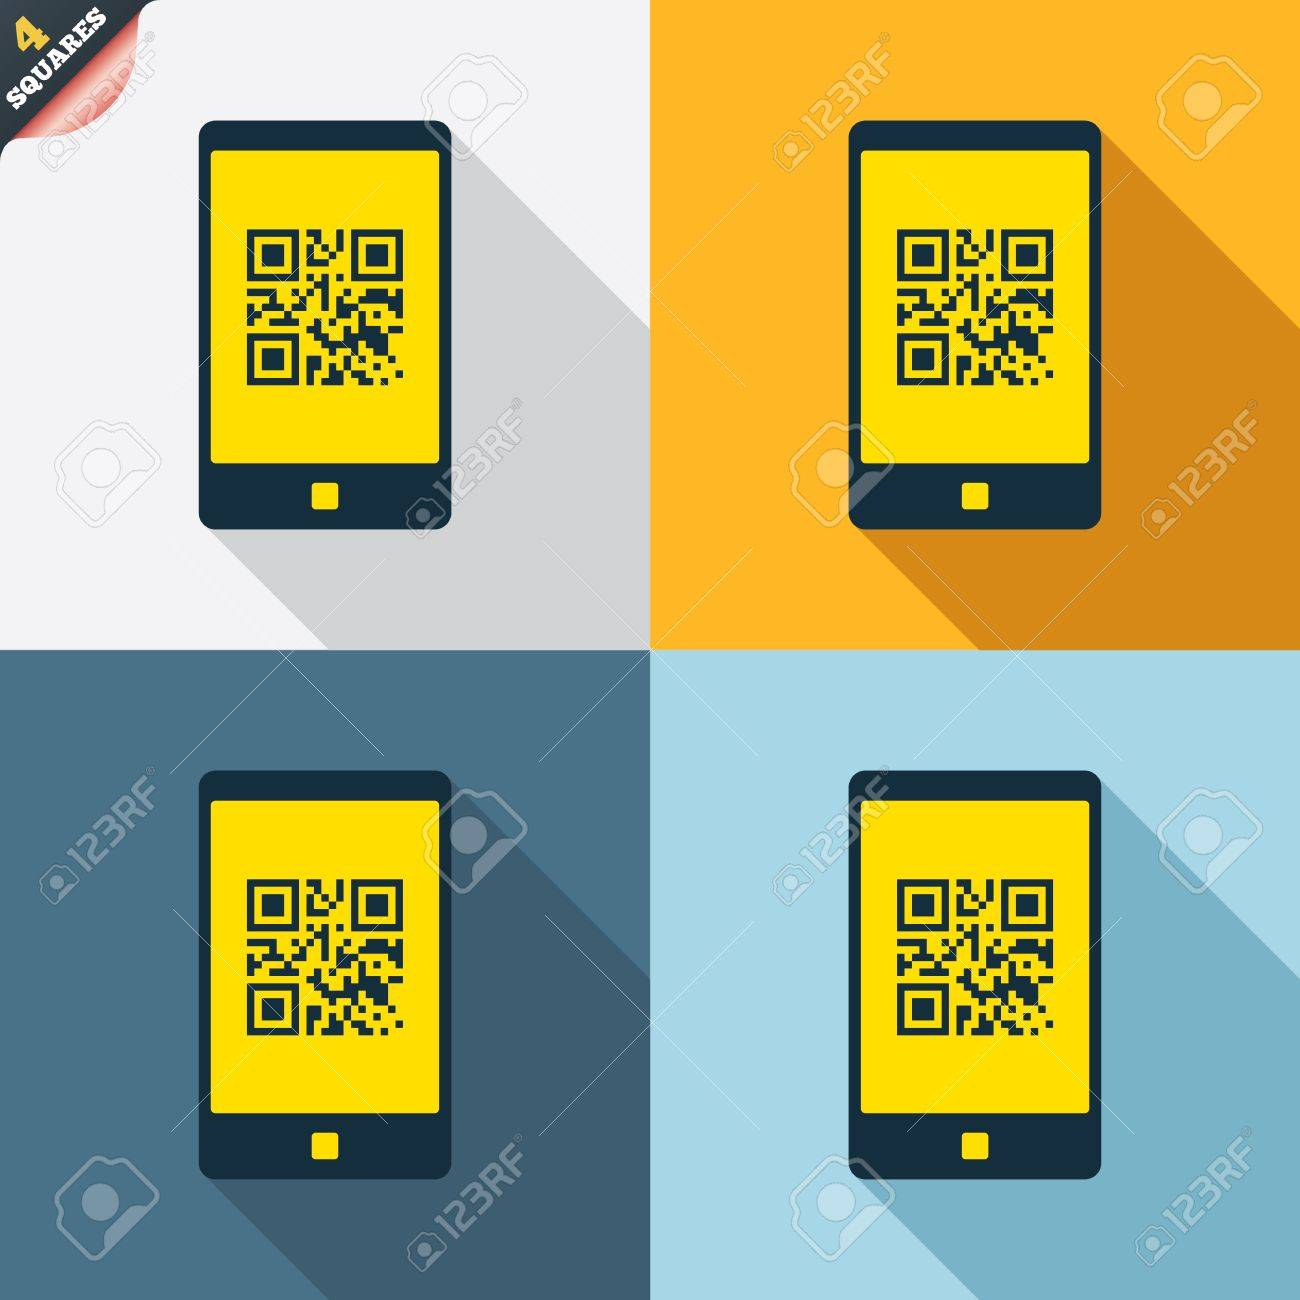 Qr code sign icon scan code in smartphone symbol coded word qr code sign icon scan code in smartphone symbol coded word success buycottarizona